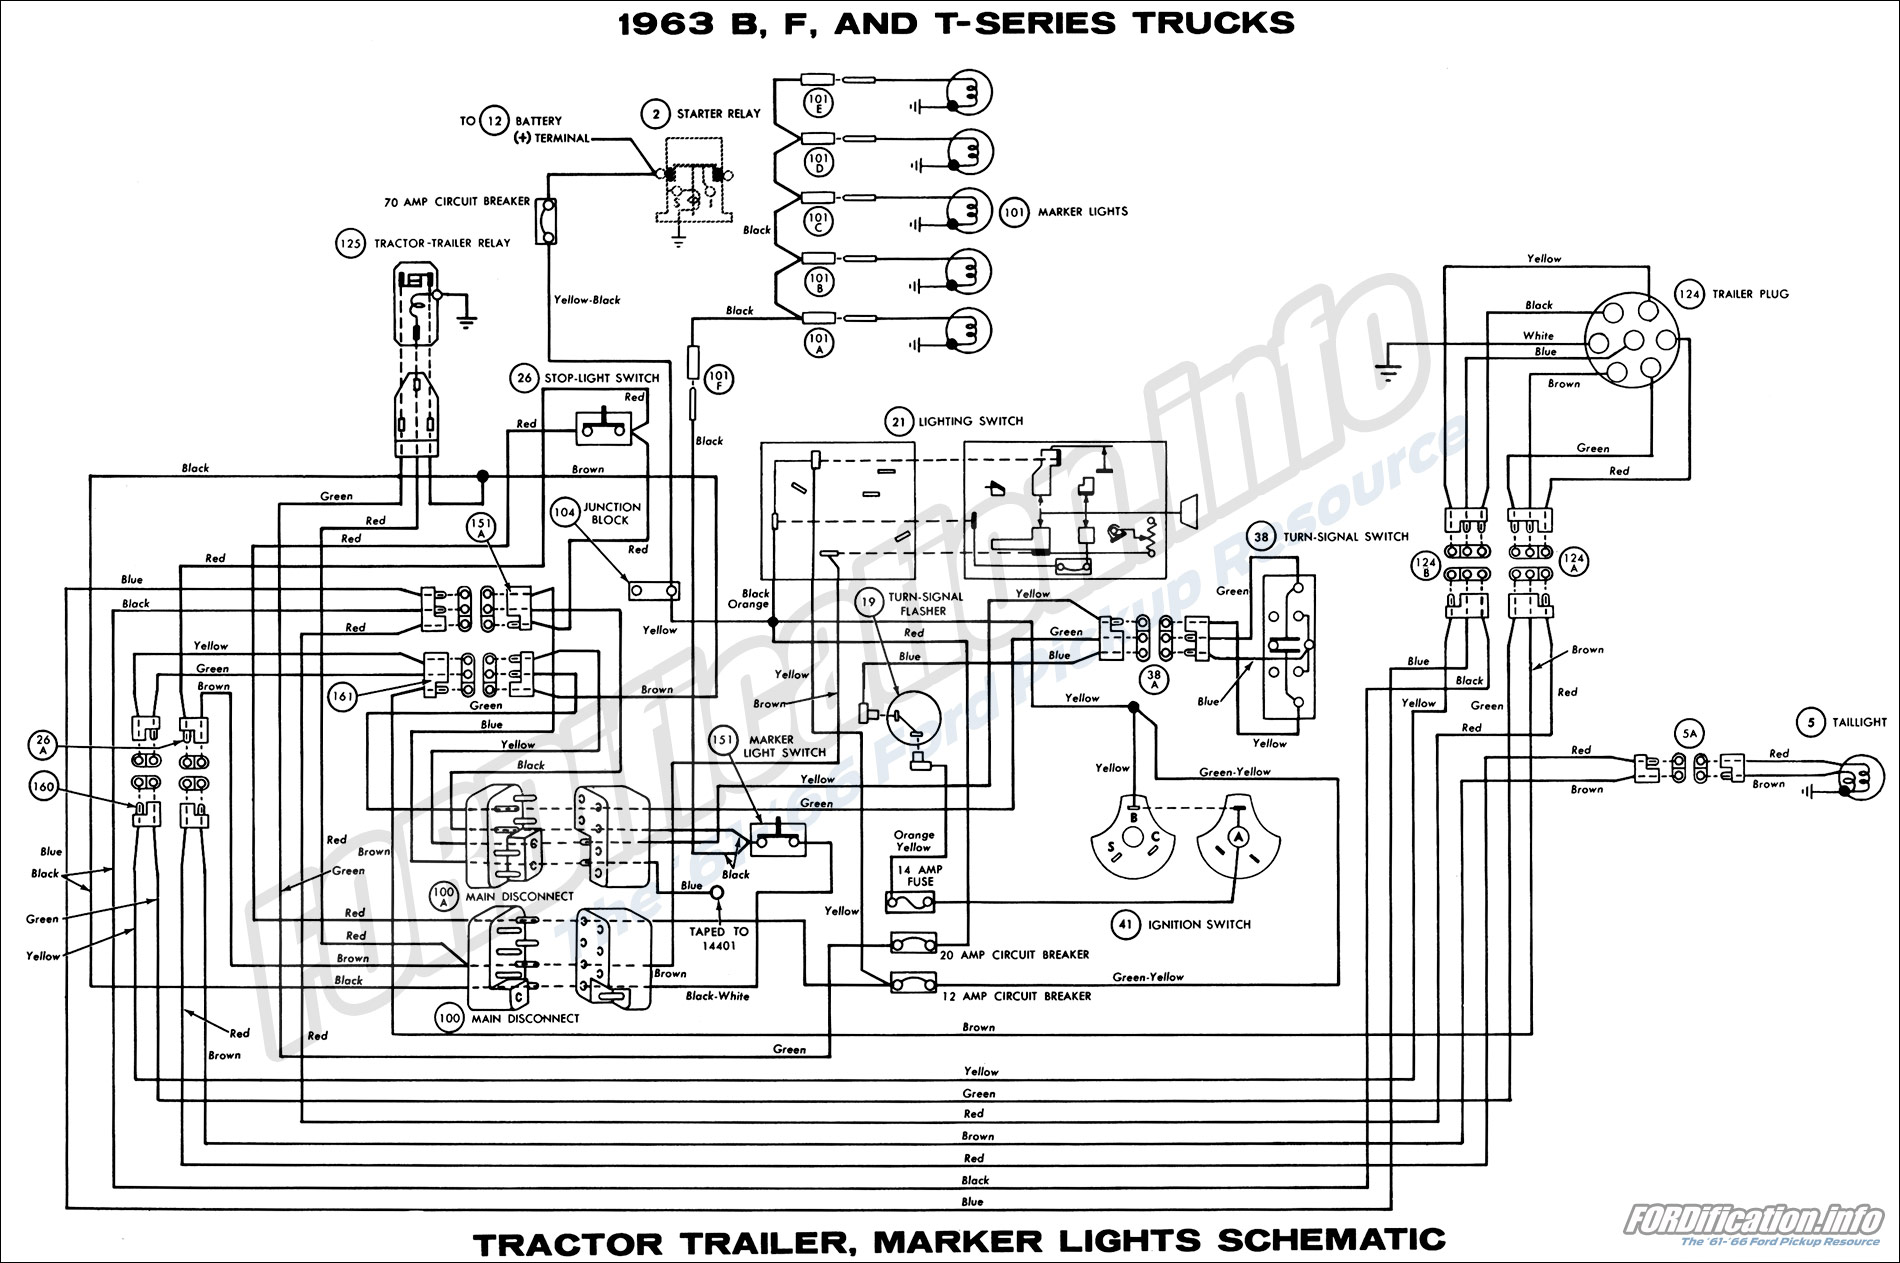 [DIAGRAM] International 7700 Truck Wiring Diagrams FULL